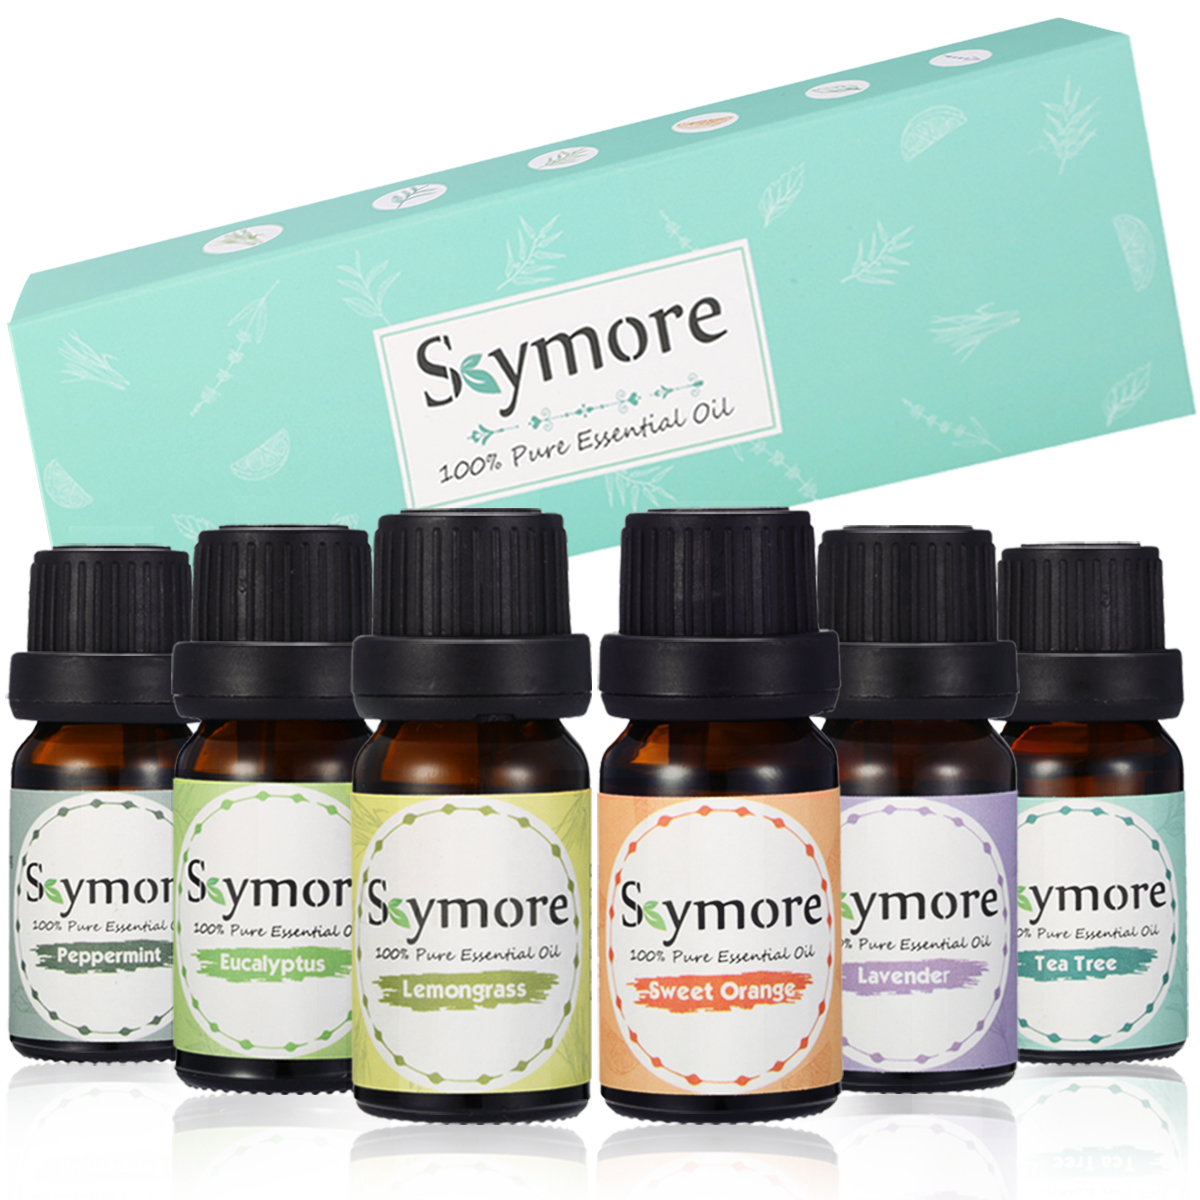 Skymore Essential Oil Set 100% Pure Therapeutic Grade Essential Oil Kit, Valentine's Day Gift 6/10ML (Tea Tree, Lavender, Peppermint, Eucalyptus, Lemongrass, Orange)